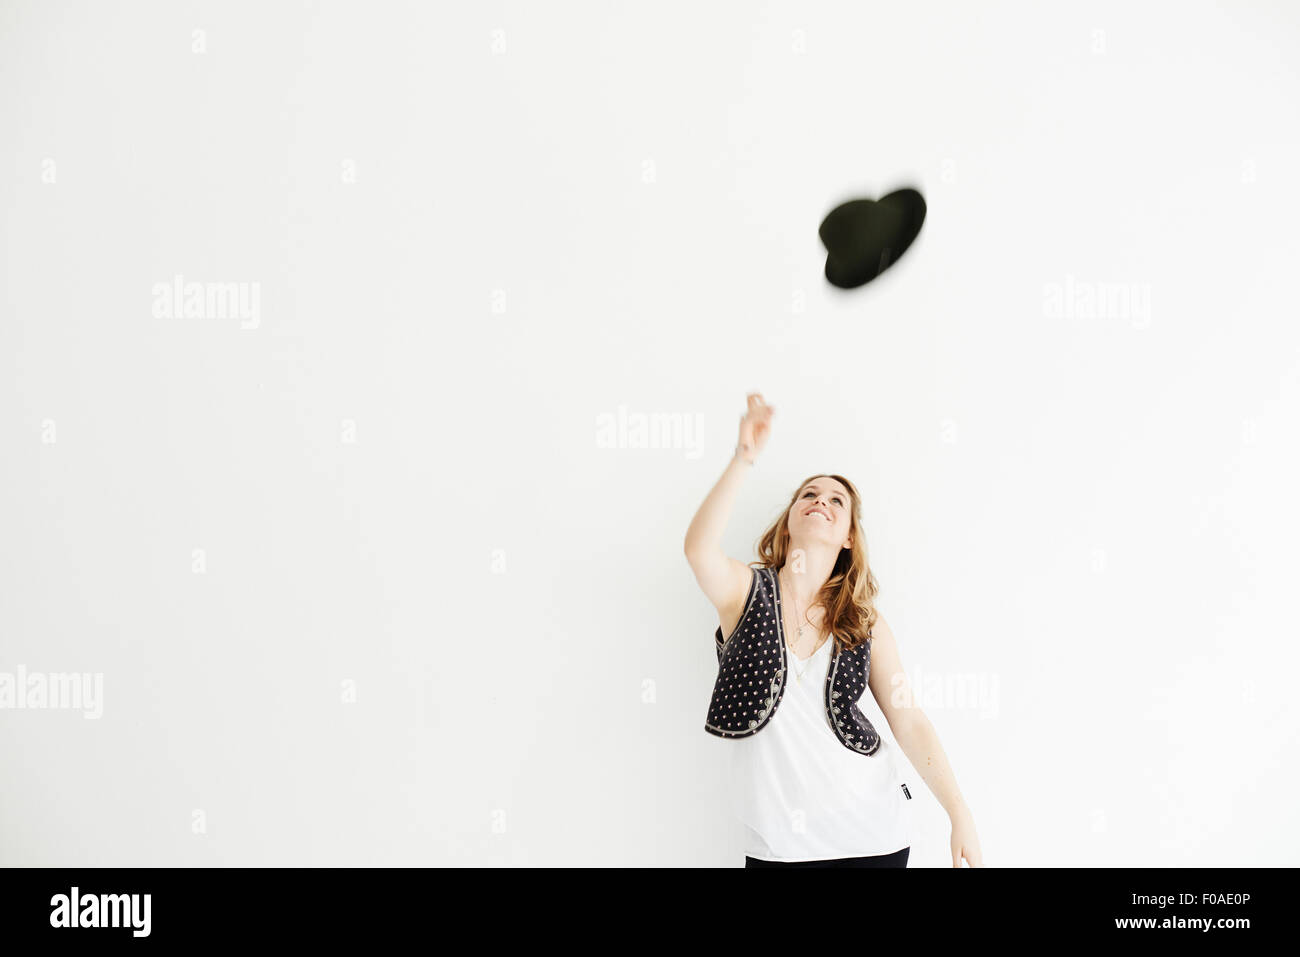 Mid adult woman throwing hat dans l'air, copy space Photo Stock